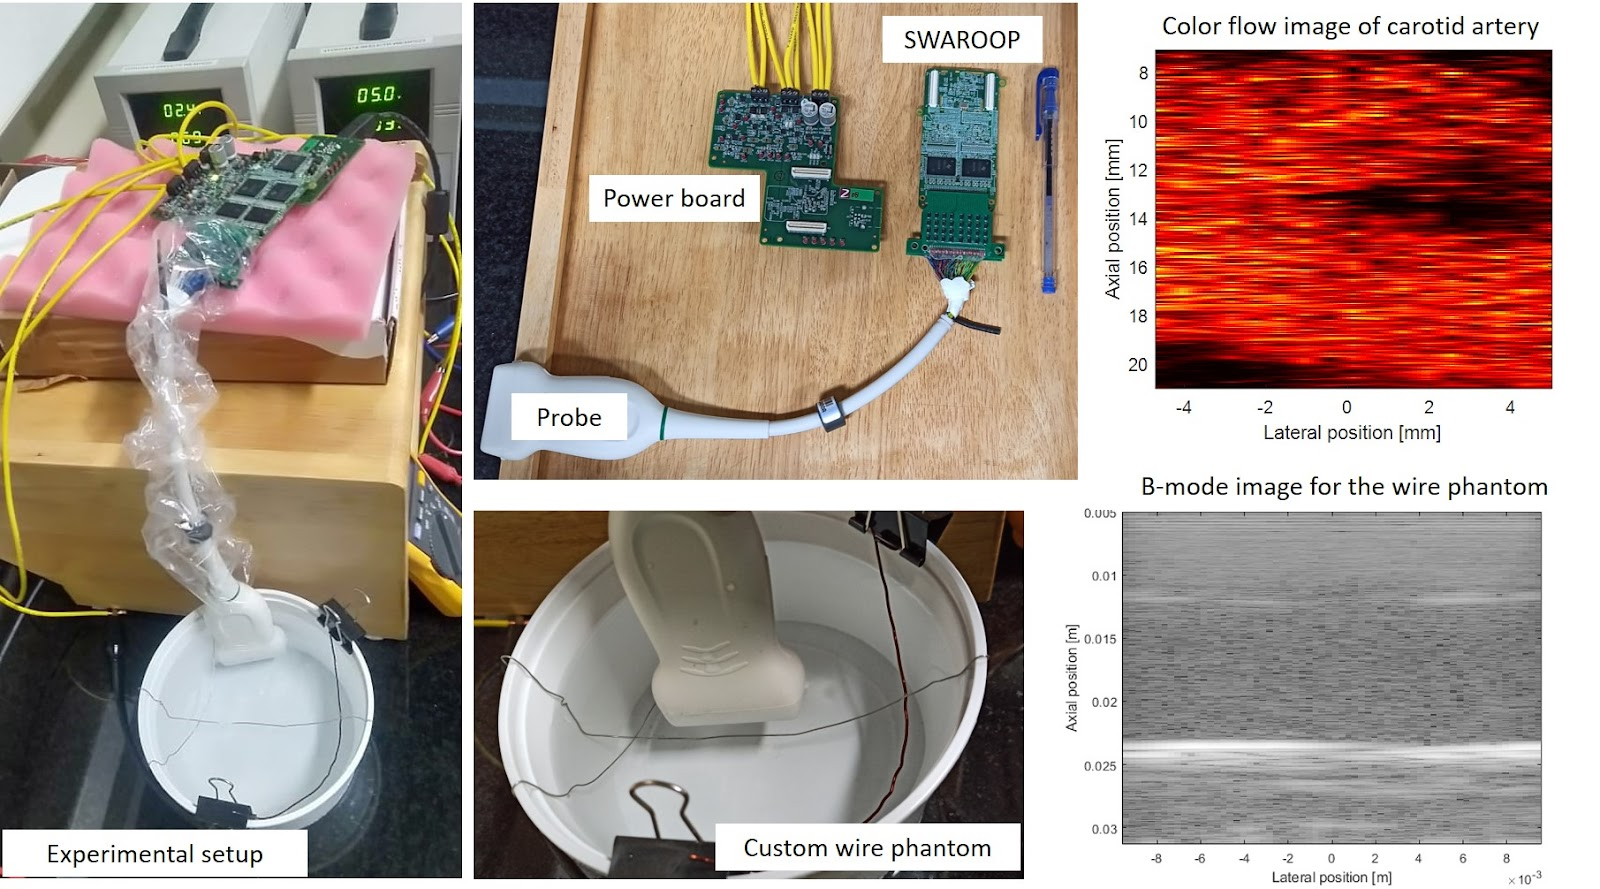 The hardware setup for the experiments and the components used. The image on the top right shows the flow in the carotid artery of a subject (Source: Centre for Computational Imaging, IIT Palakkad)